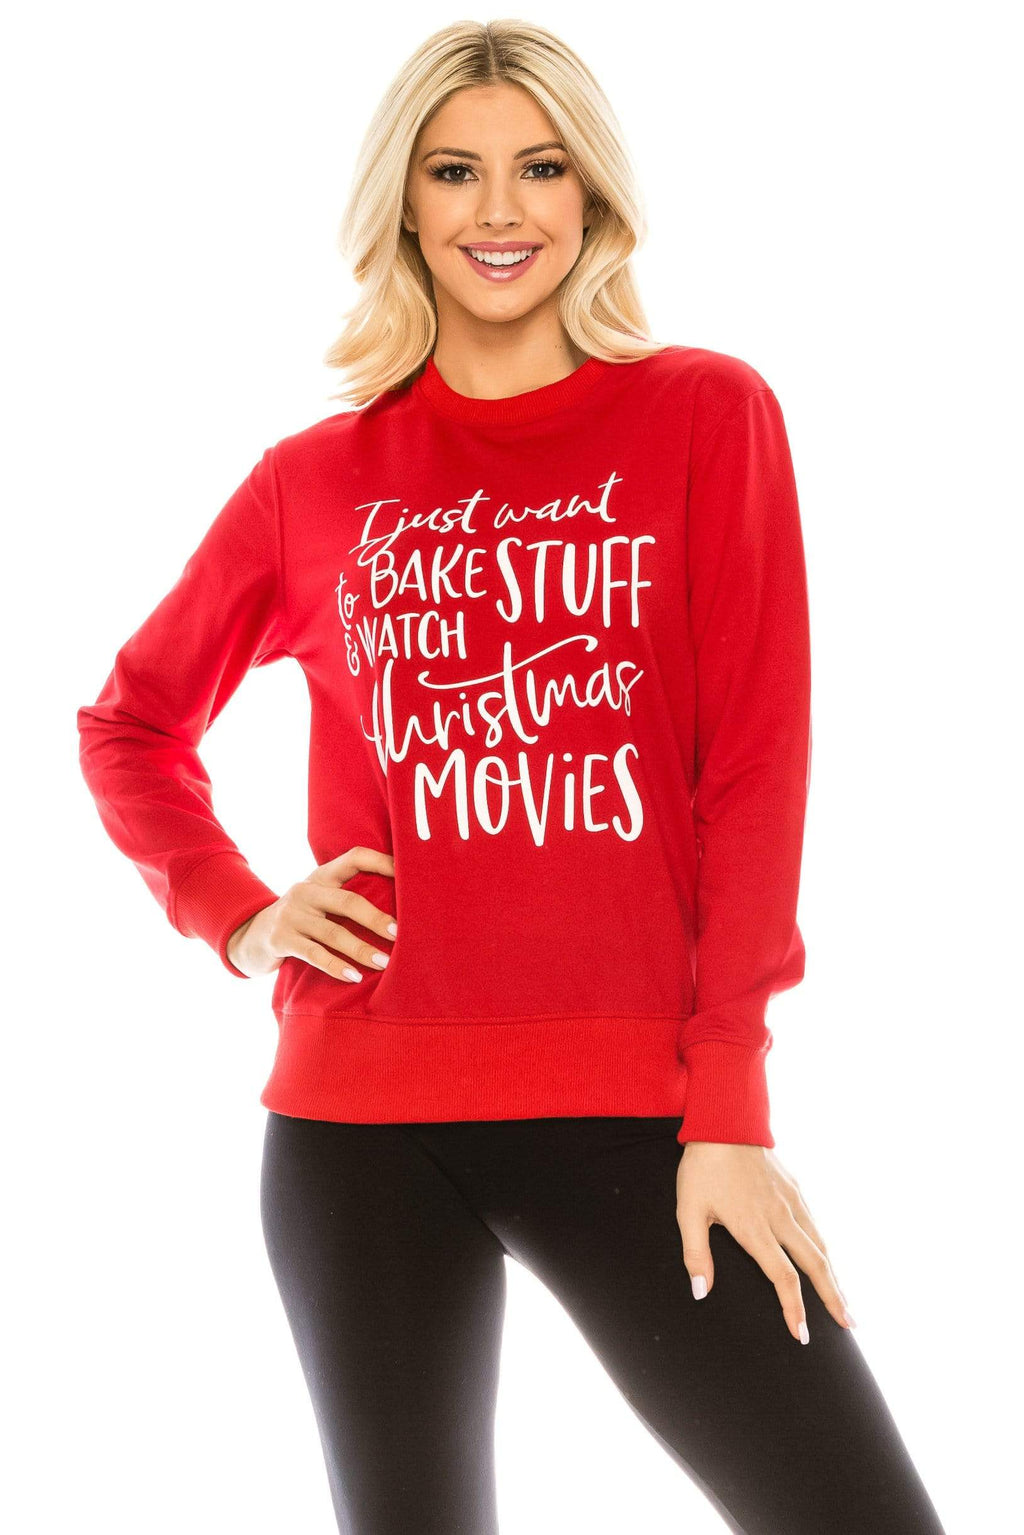 Haute Edition WOMEN'S TOP BAKER / S Holiday Christmas Baking Themed Sweatshirt with Bonus Oven Mitt and Potholder Gift Set